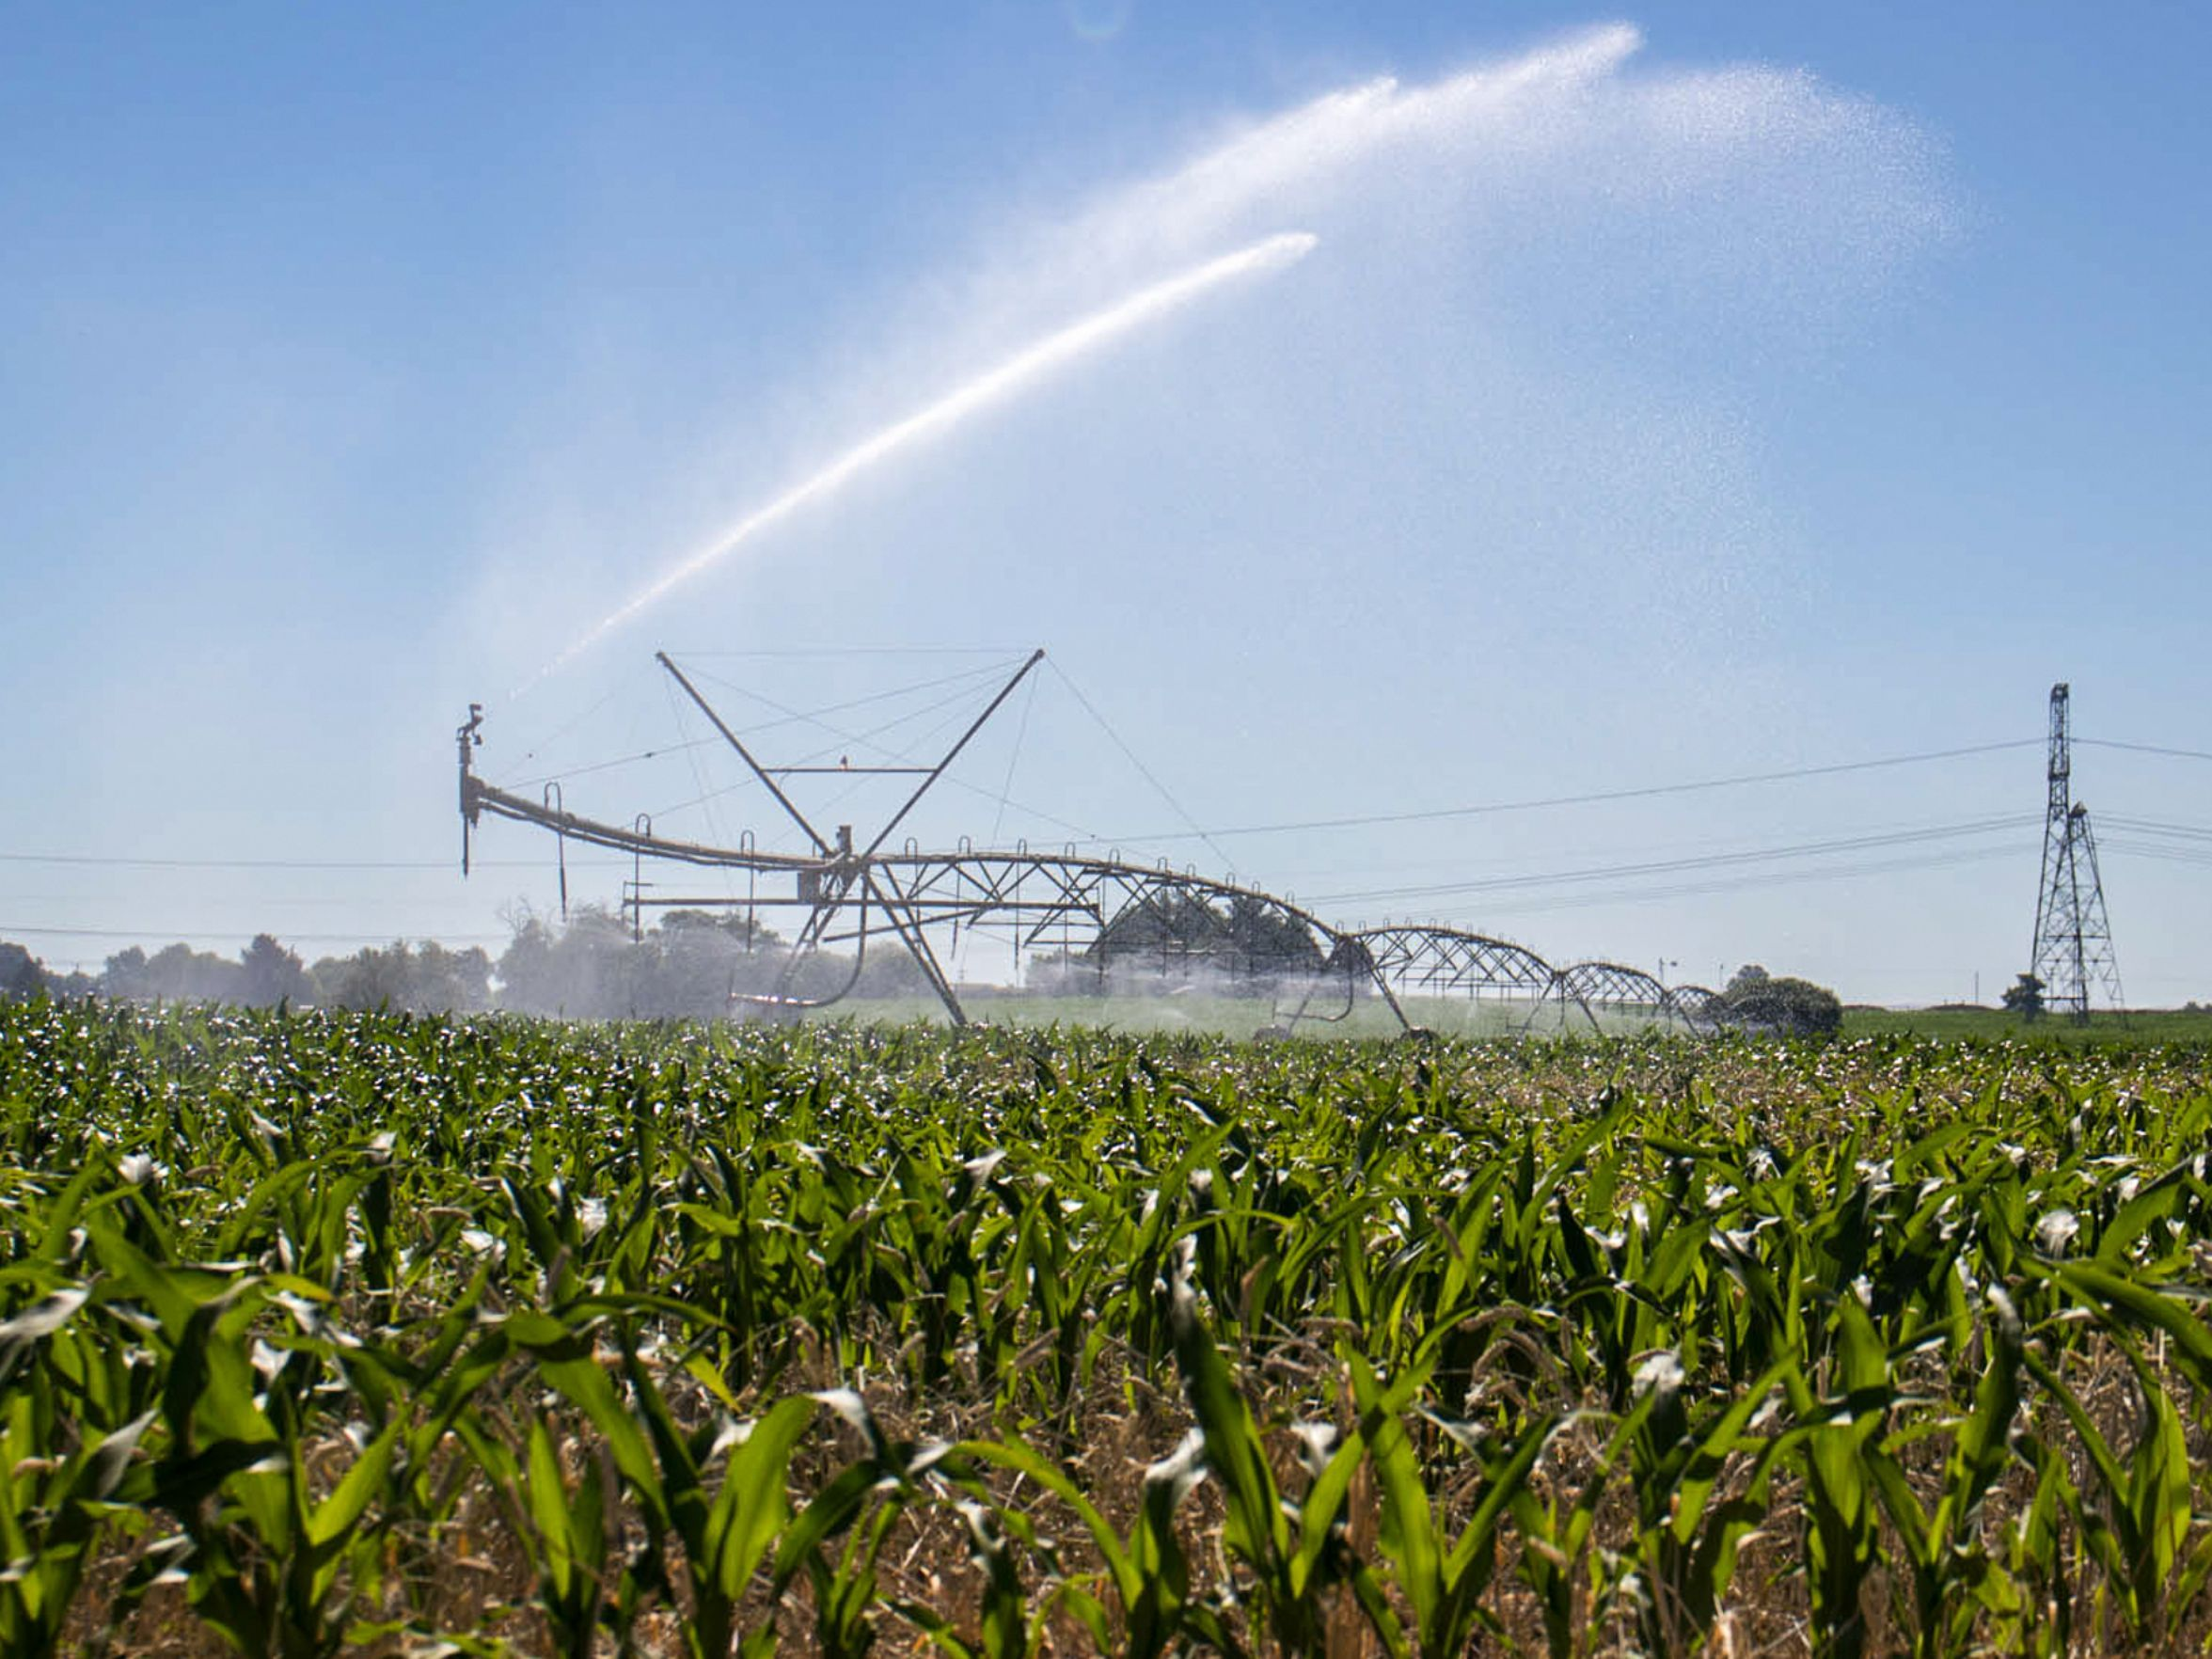 A central pivot irrigation system waters a corn field